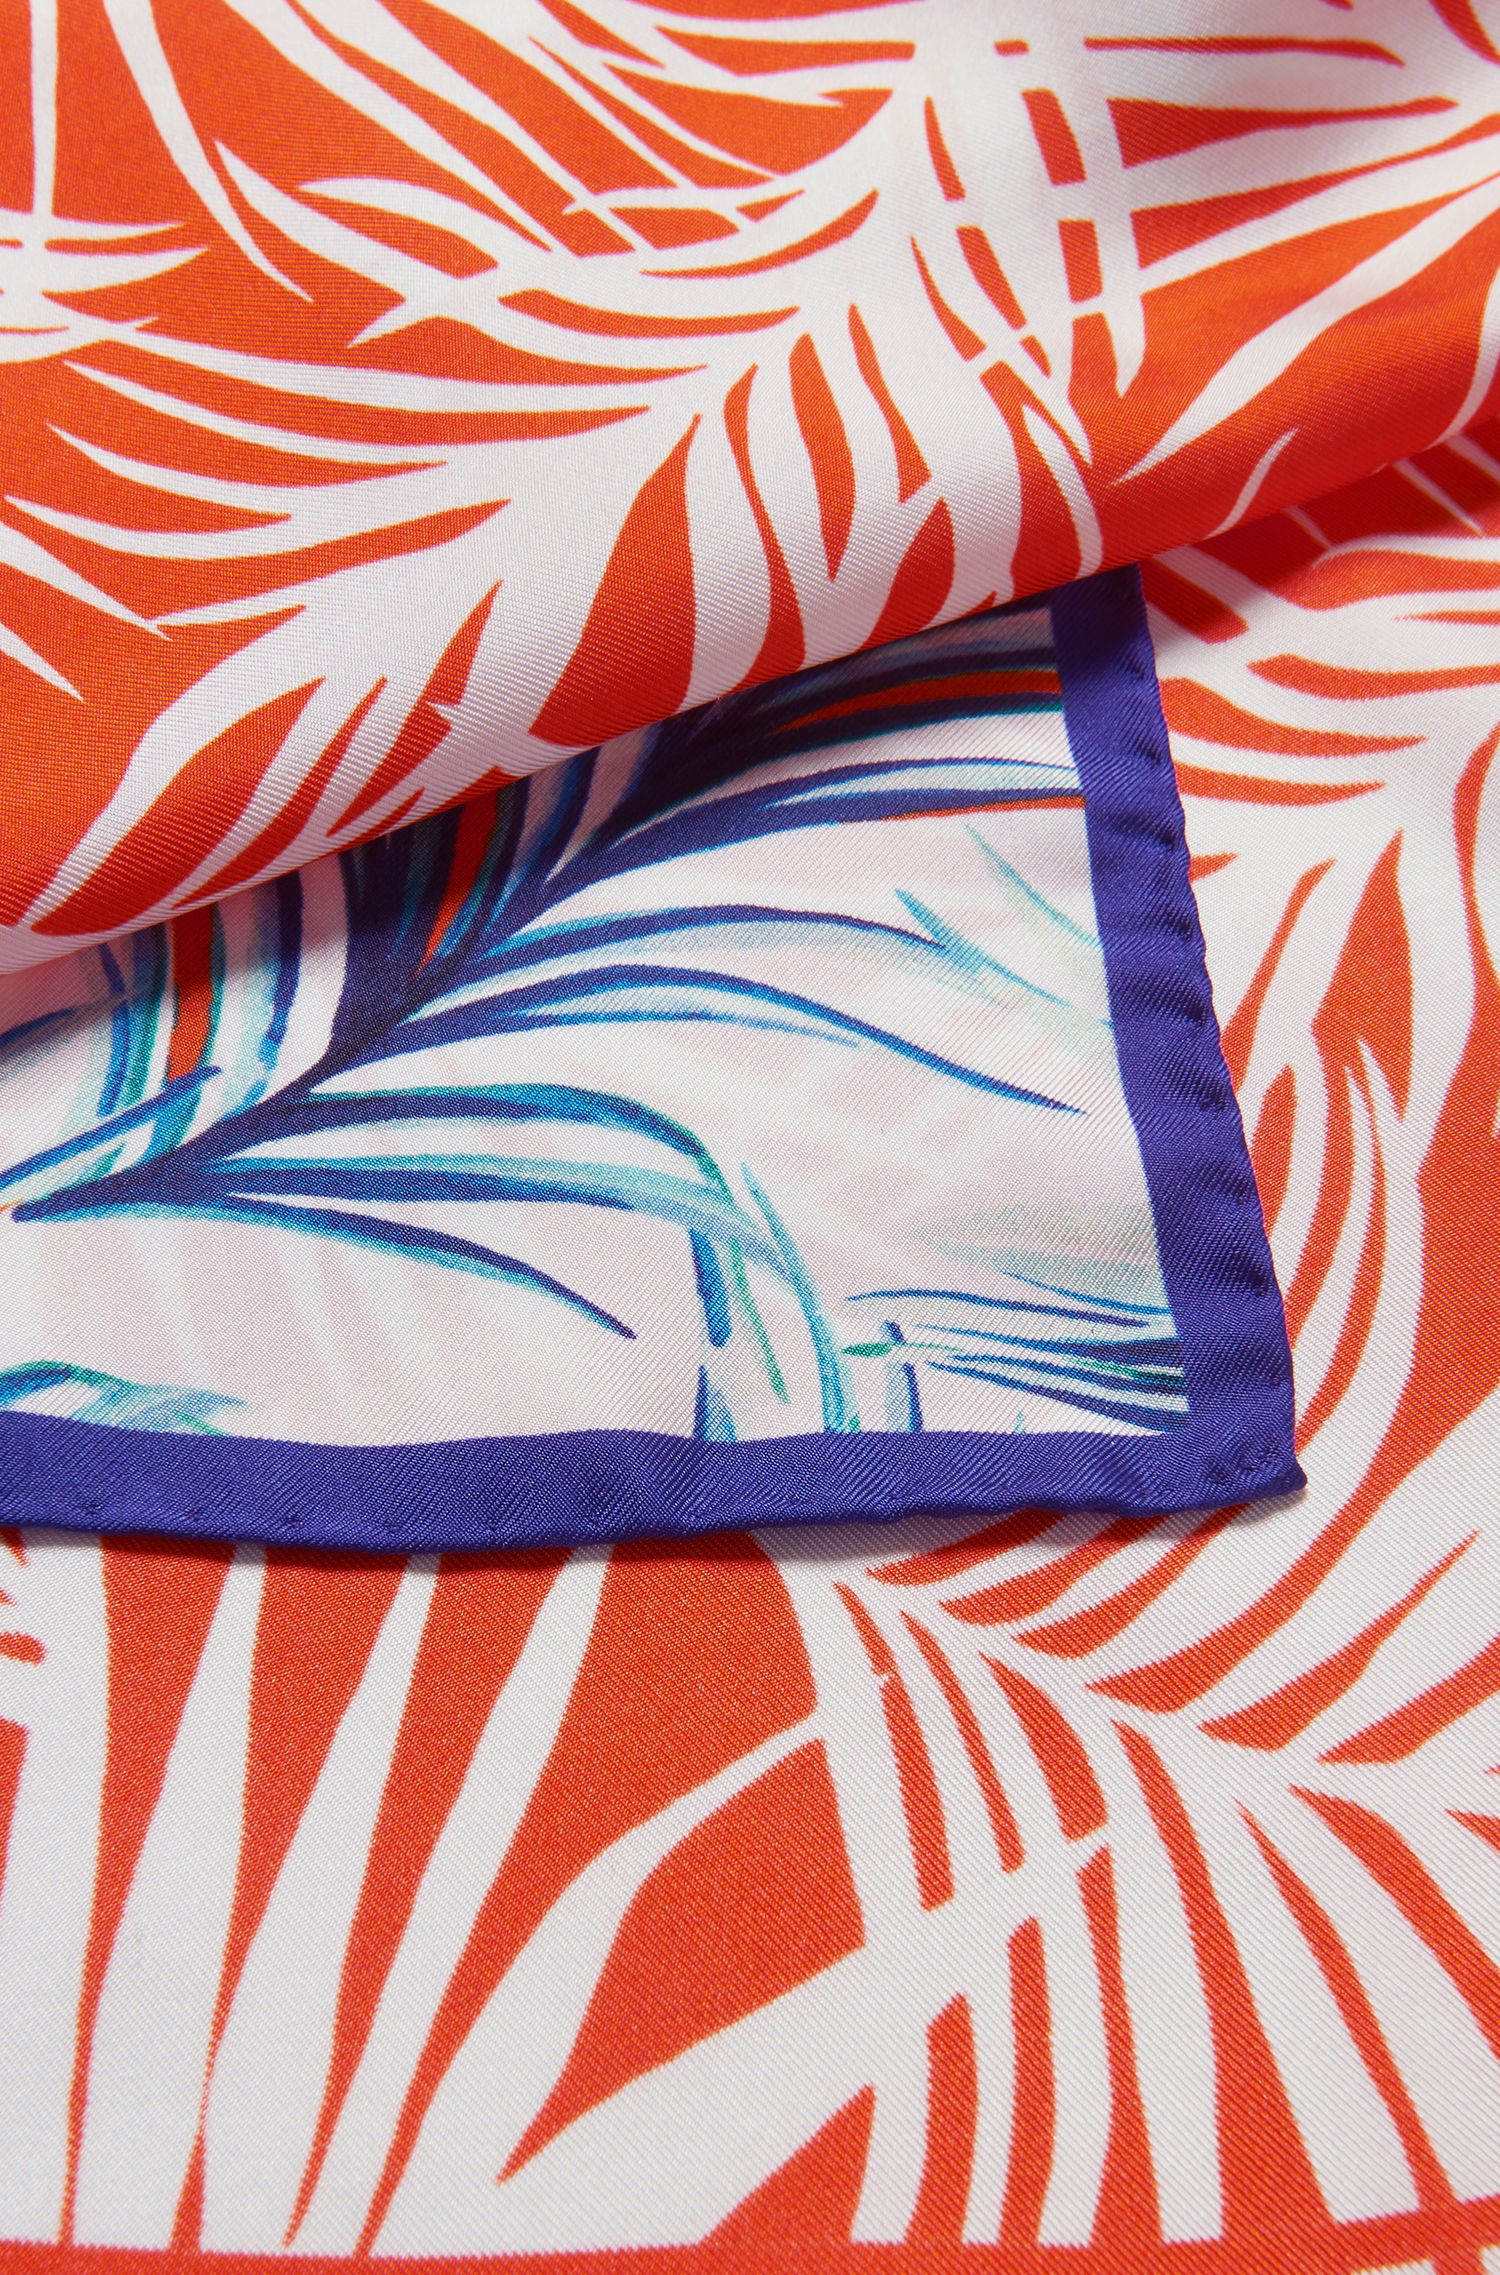 Leaf-print silk scarf with contrast border, Patterned